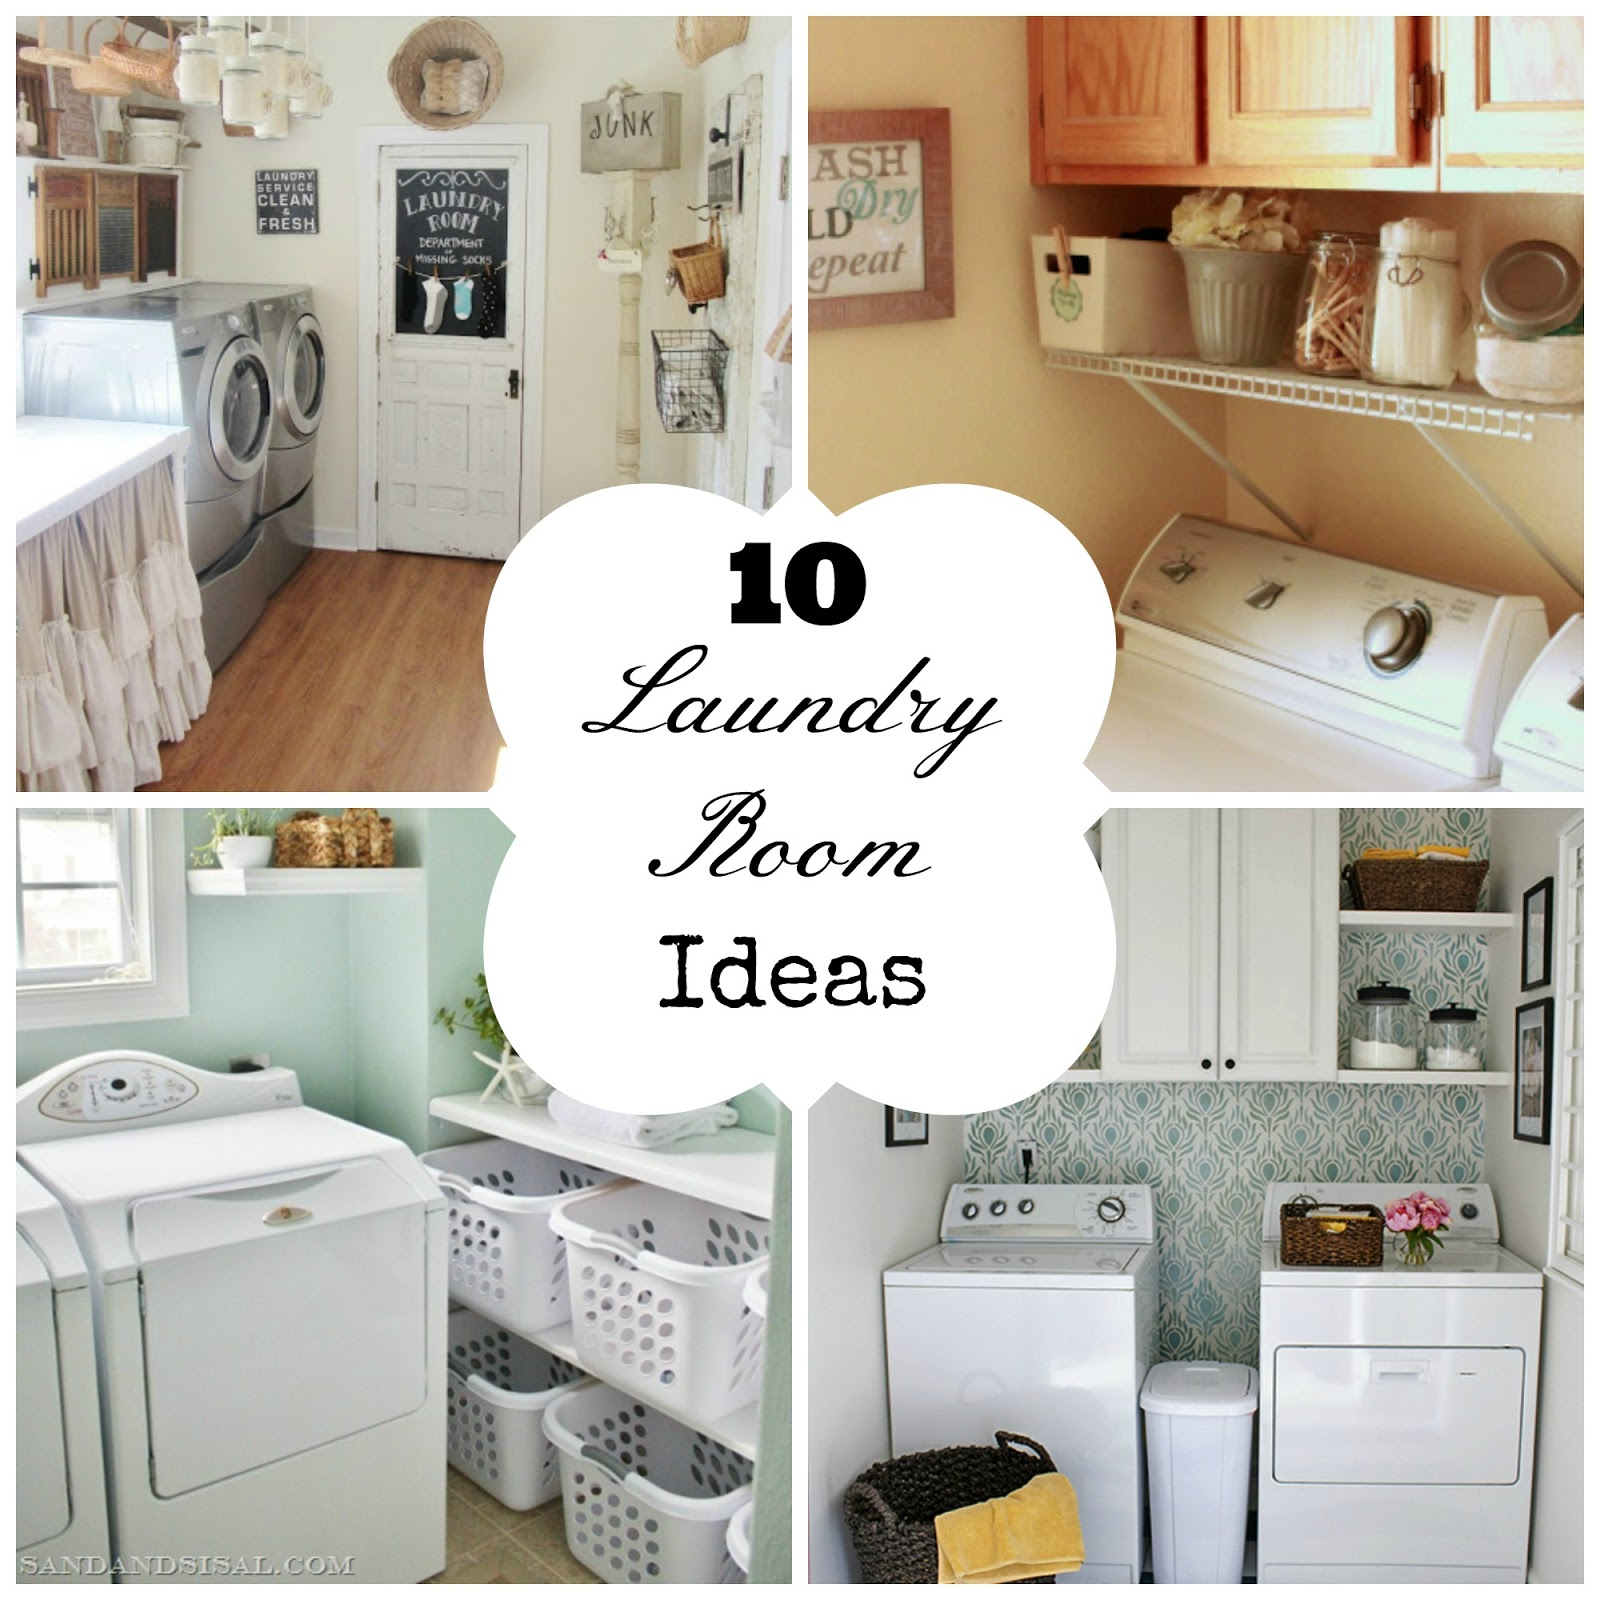 10-laundry-room-ideas